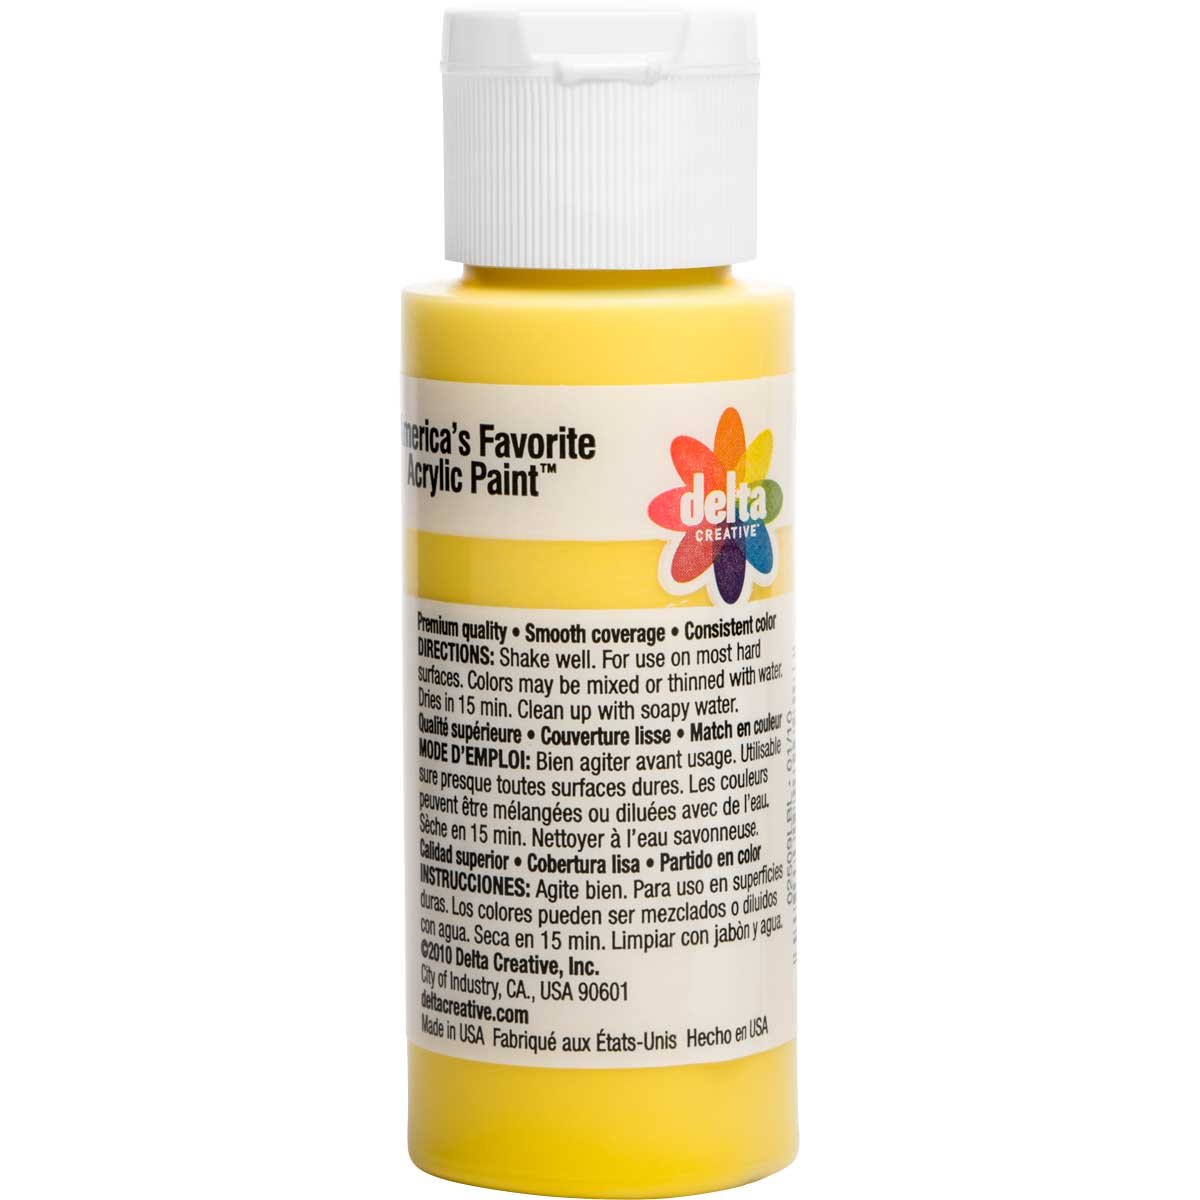 Delta Ceramcoat ® Acrylic Paint - Opaque Yellow, 2 oz. - 025090202W